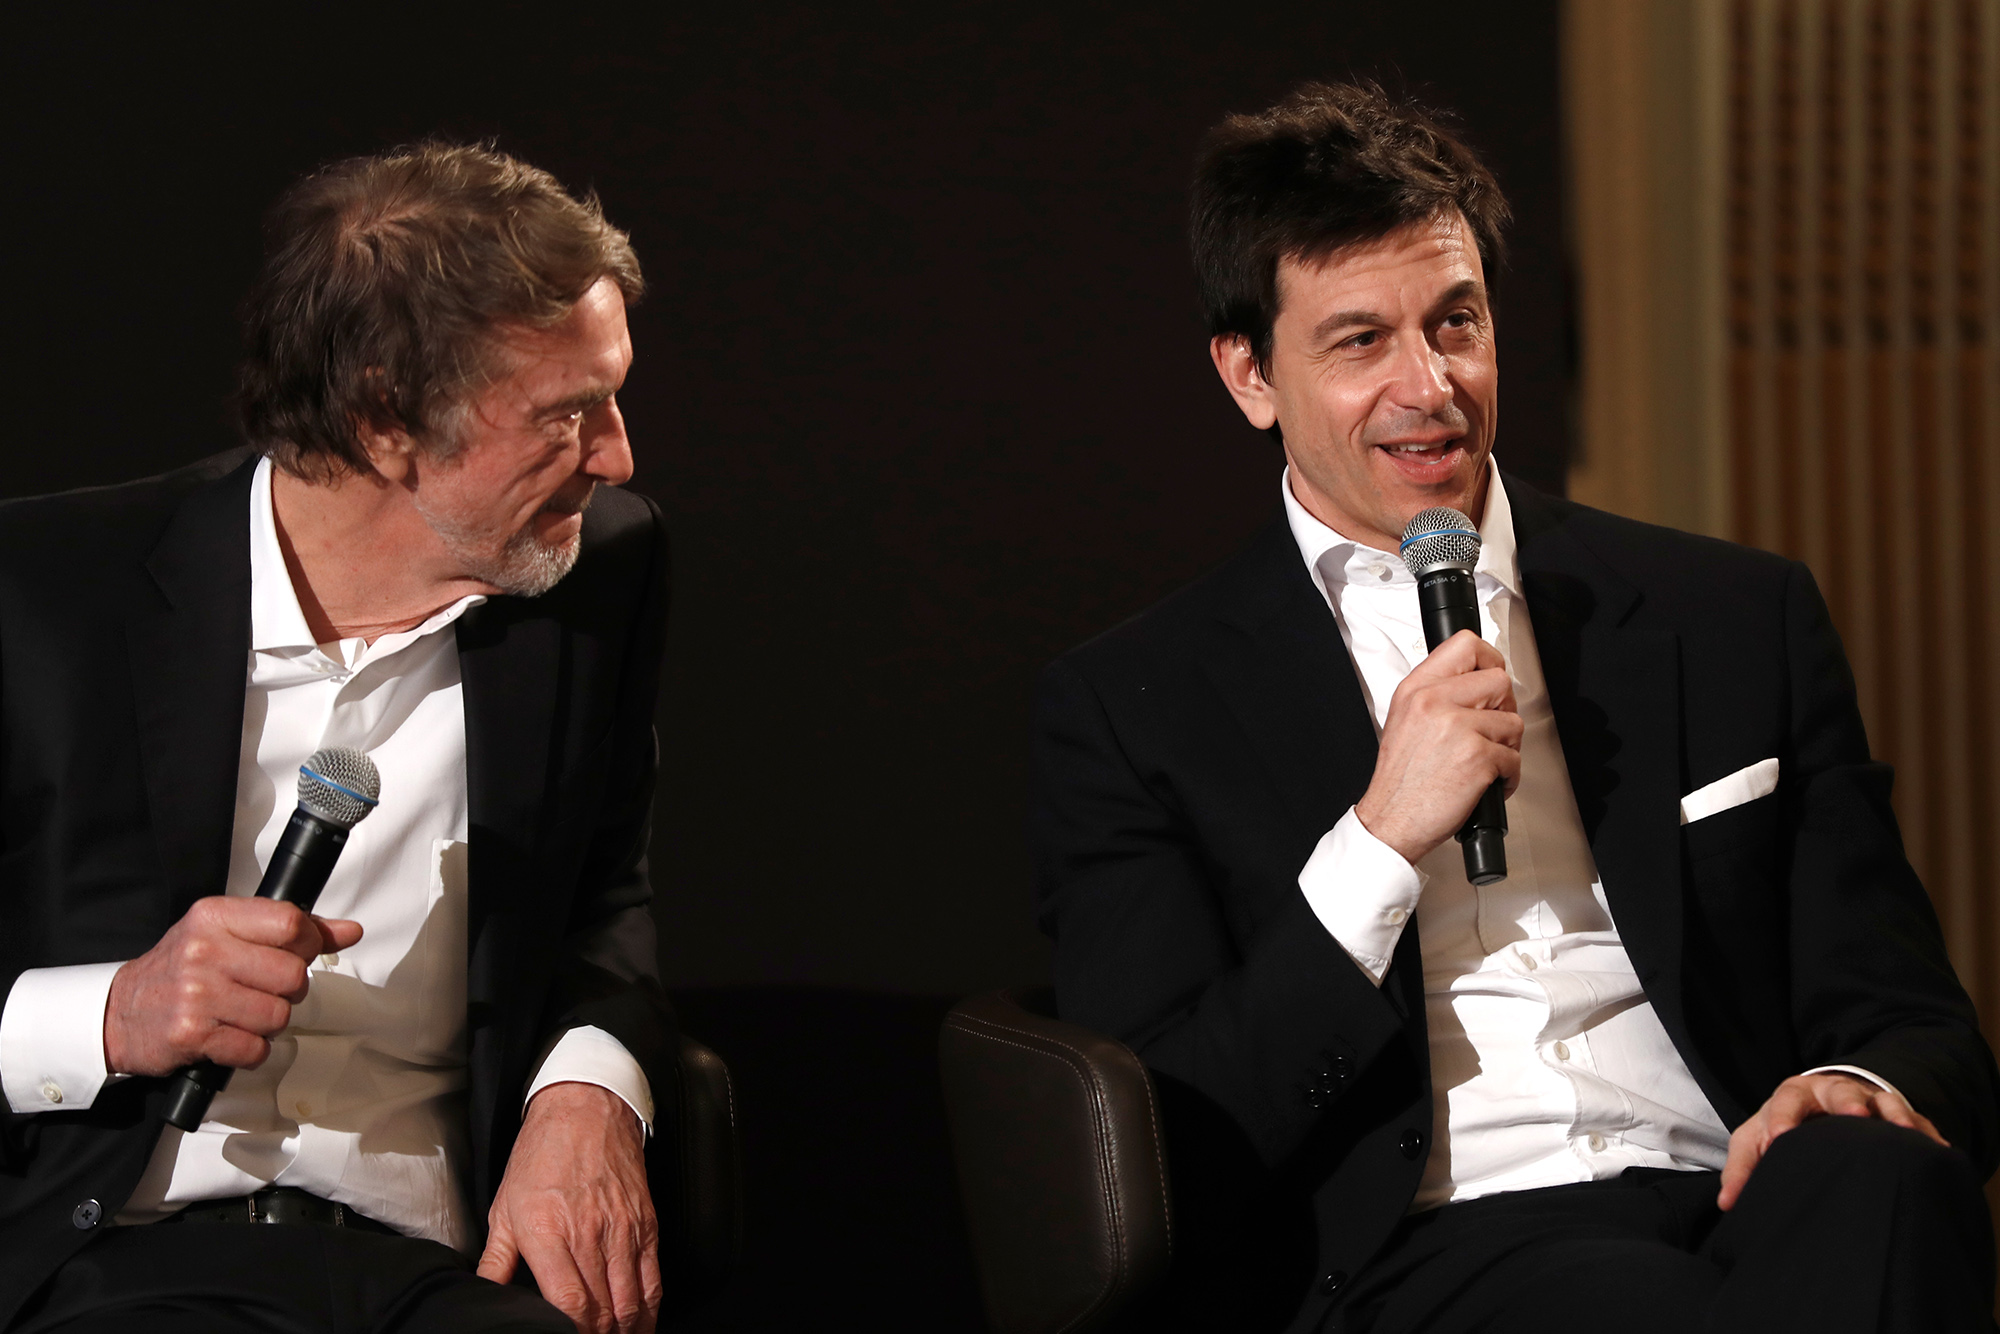 Toto Wolff speaking next to Sir Jim Ratcliffe at the Royal Automobile Club ahead of the 2020 F1 season